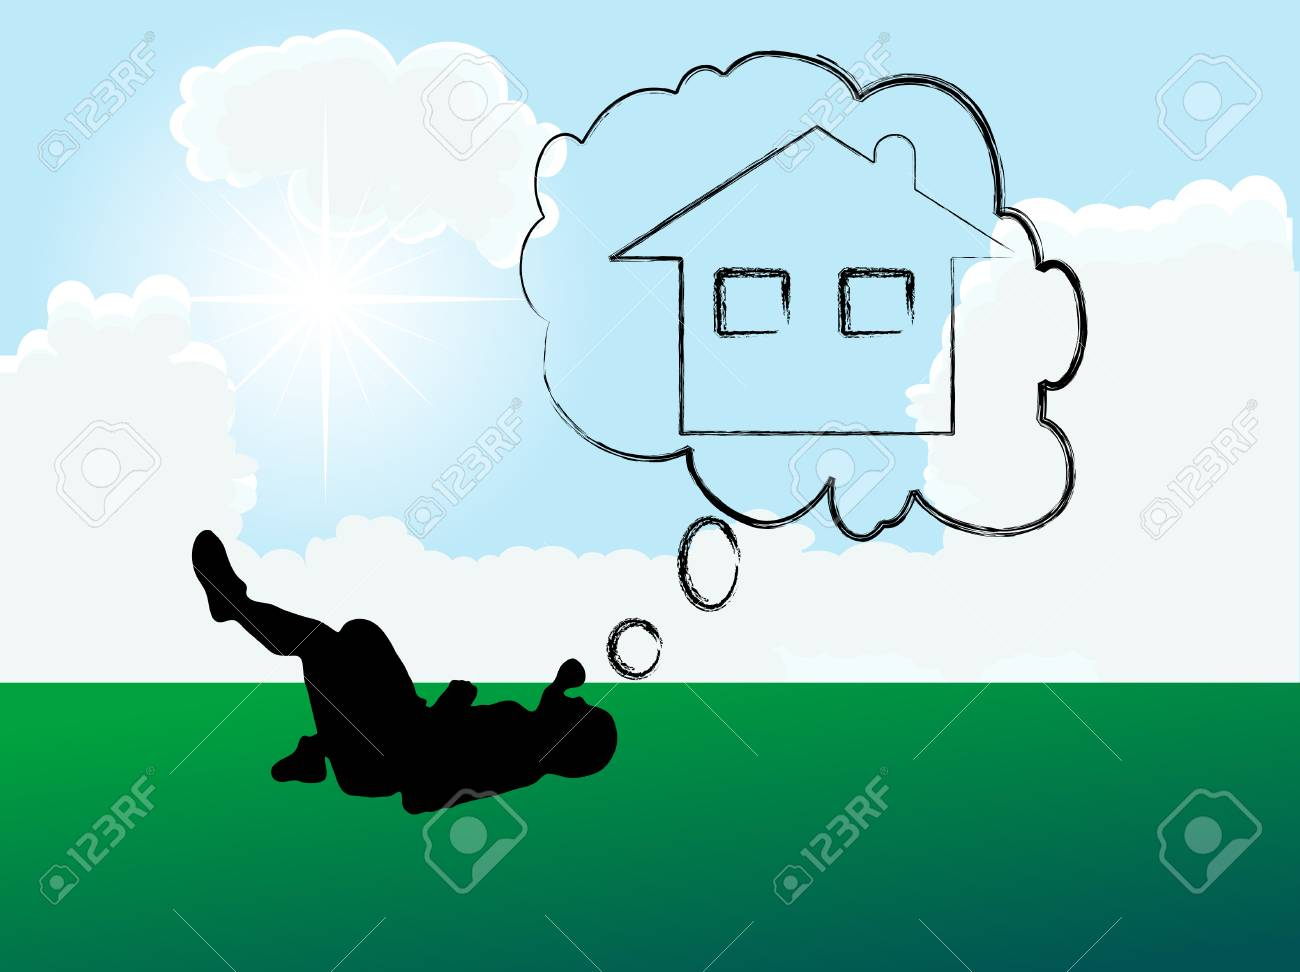 Home on the meadow - vector illustration Stock Vector - 5617603